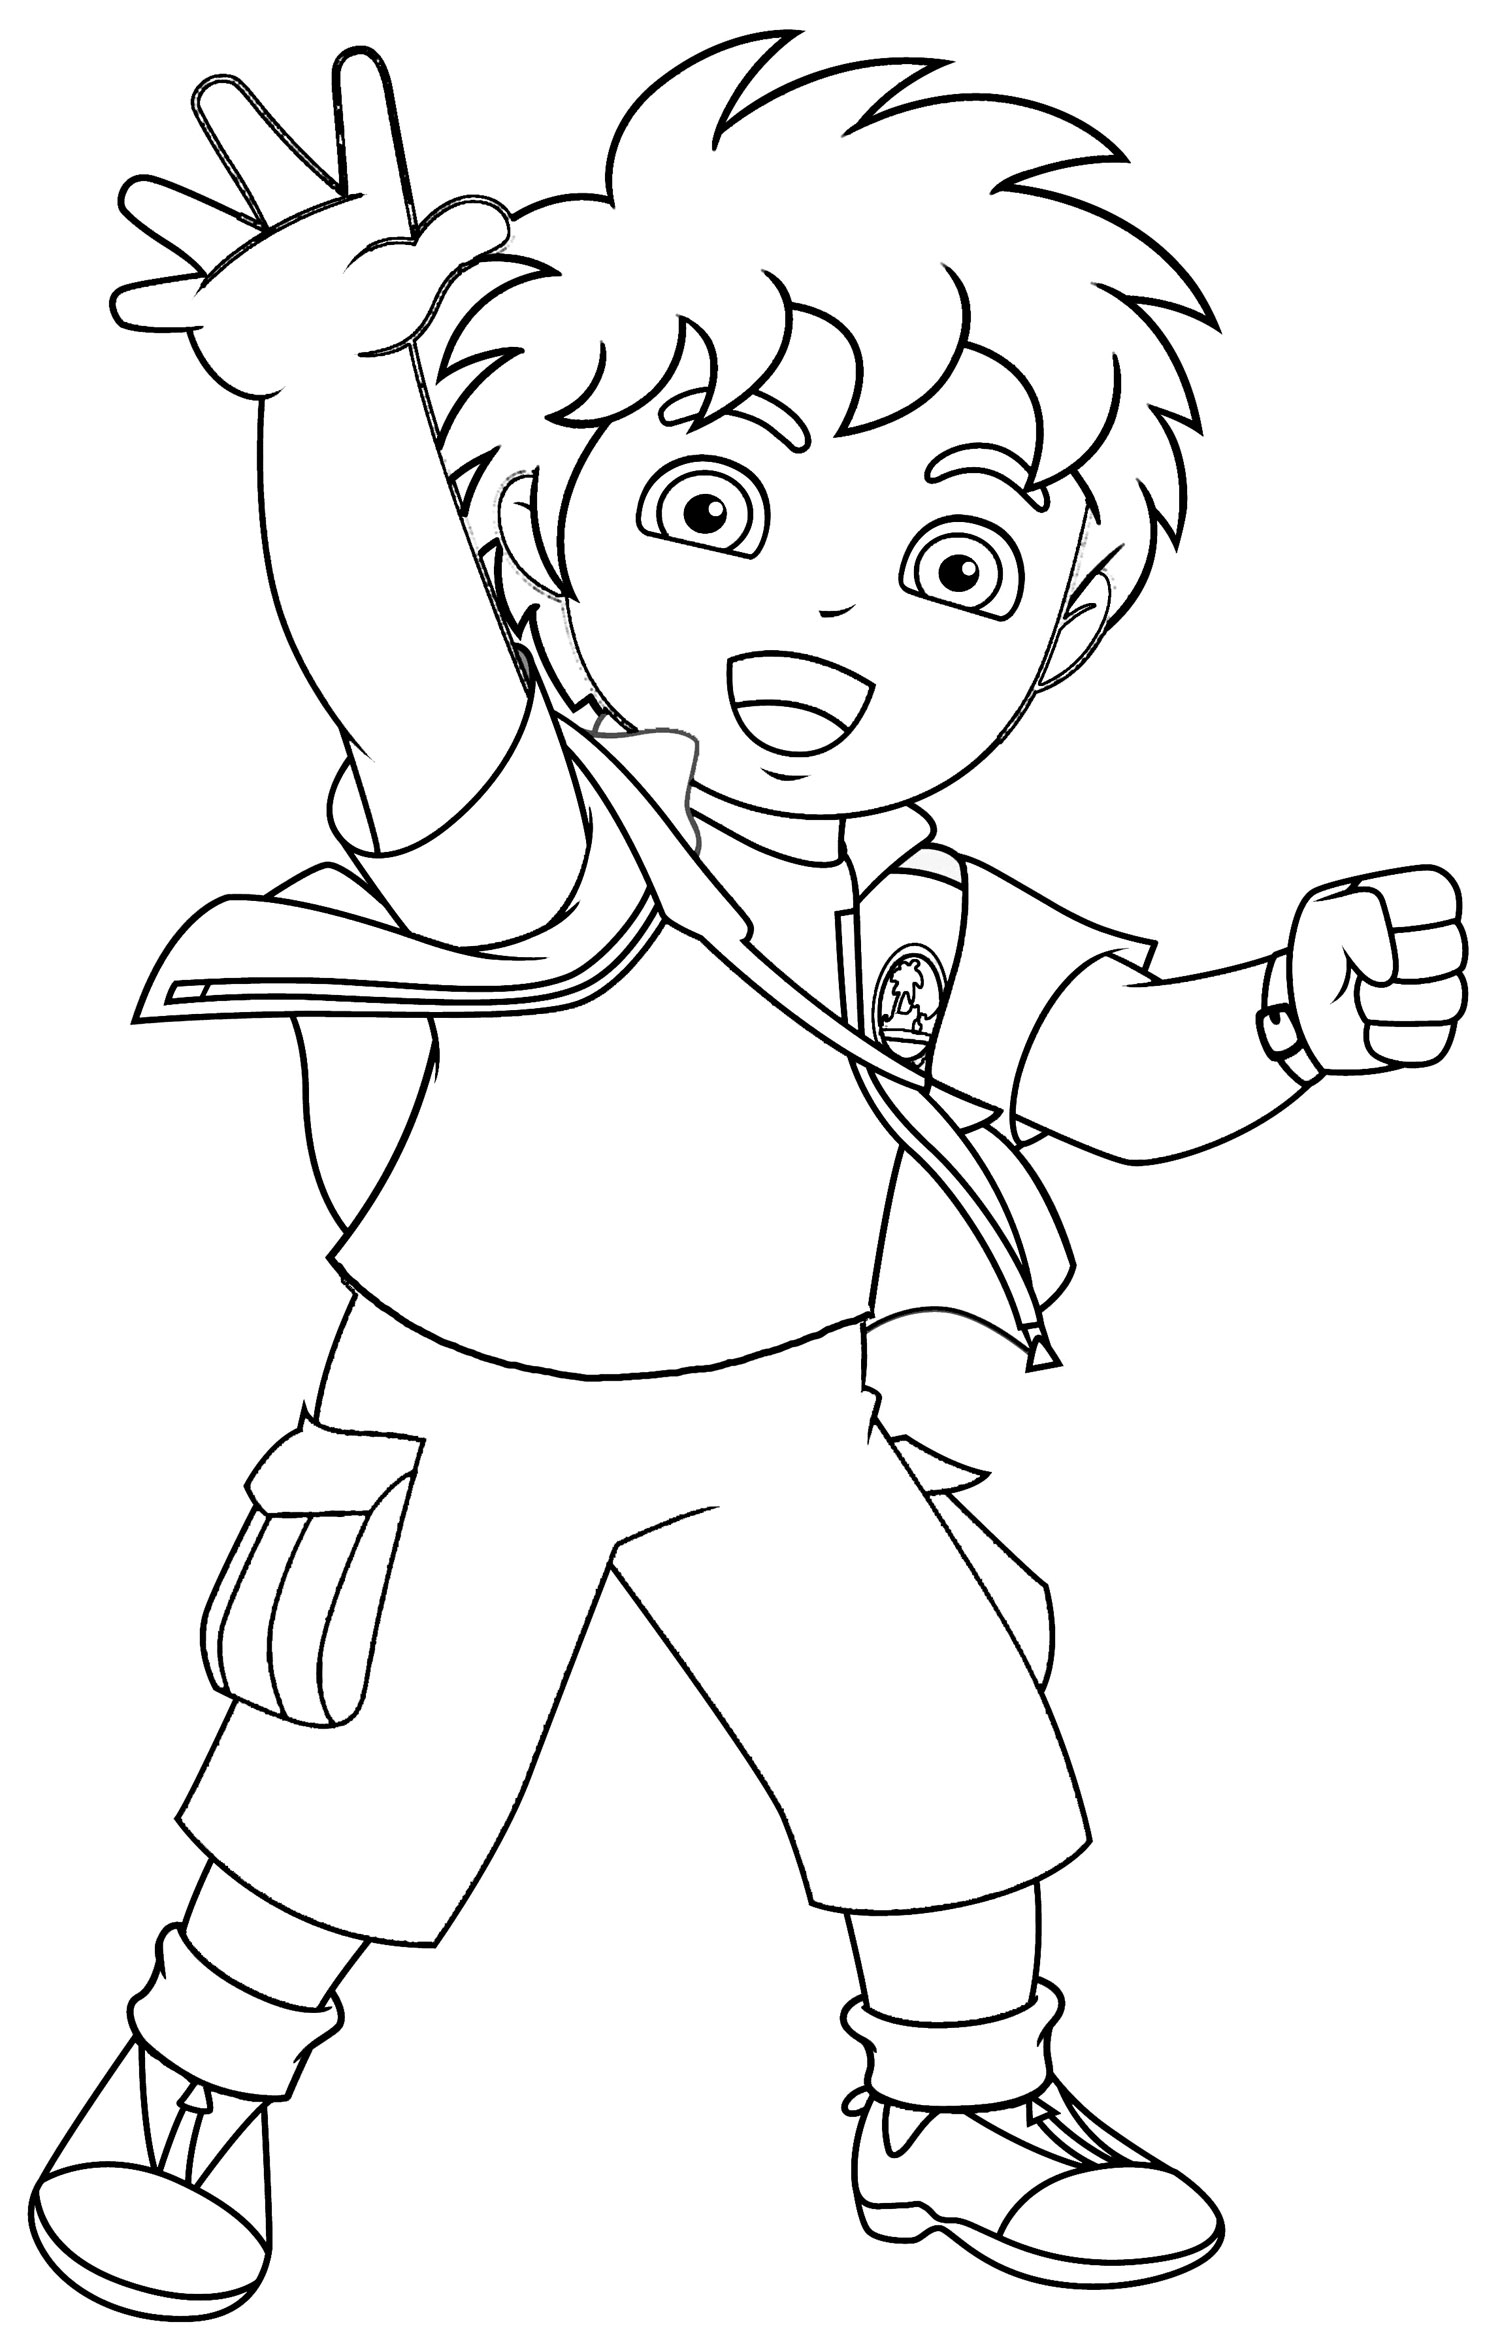 Free Printable Diego Coloring Pages For Kids Free Printable Coloring Pages Printable